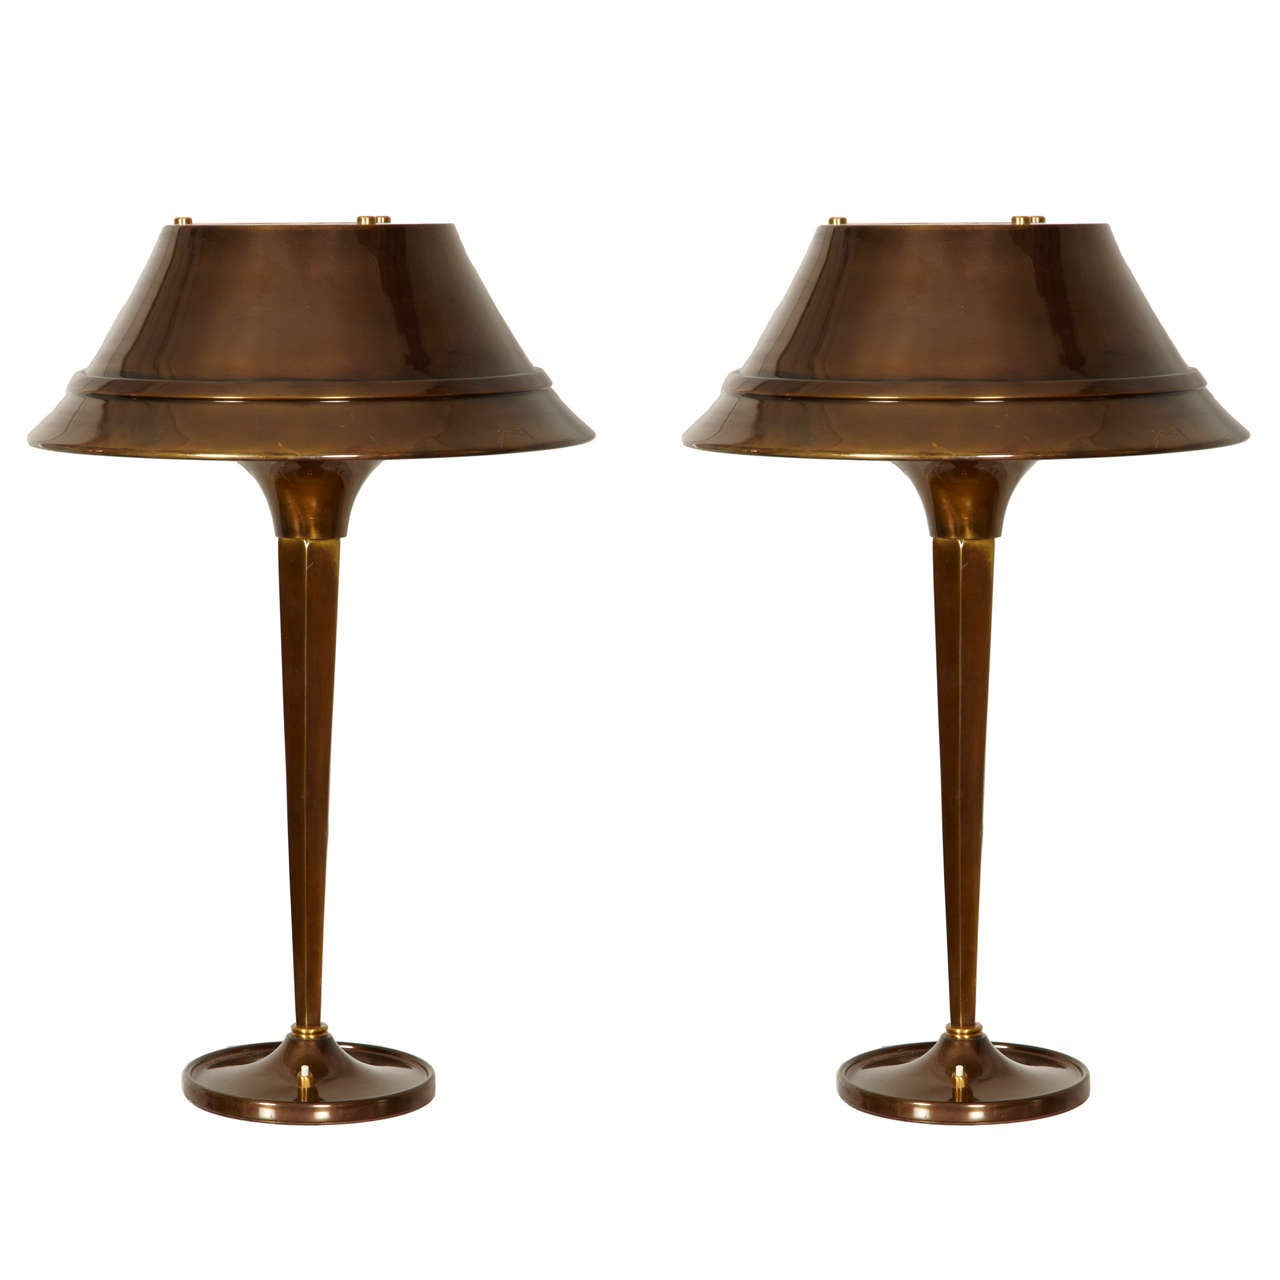 Fantastic Pair of Table Lamps Designed by Genet & Michon